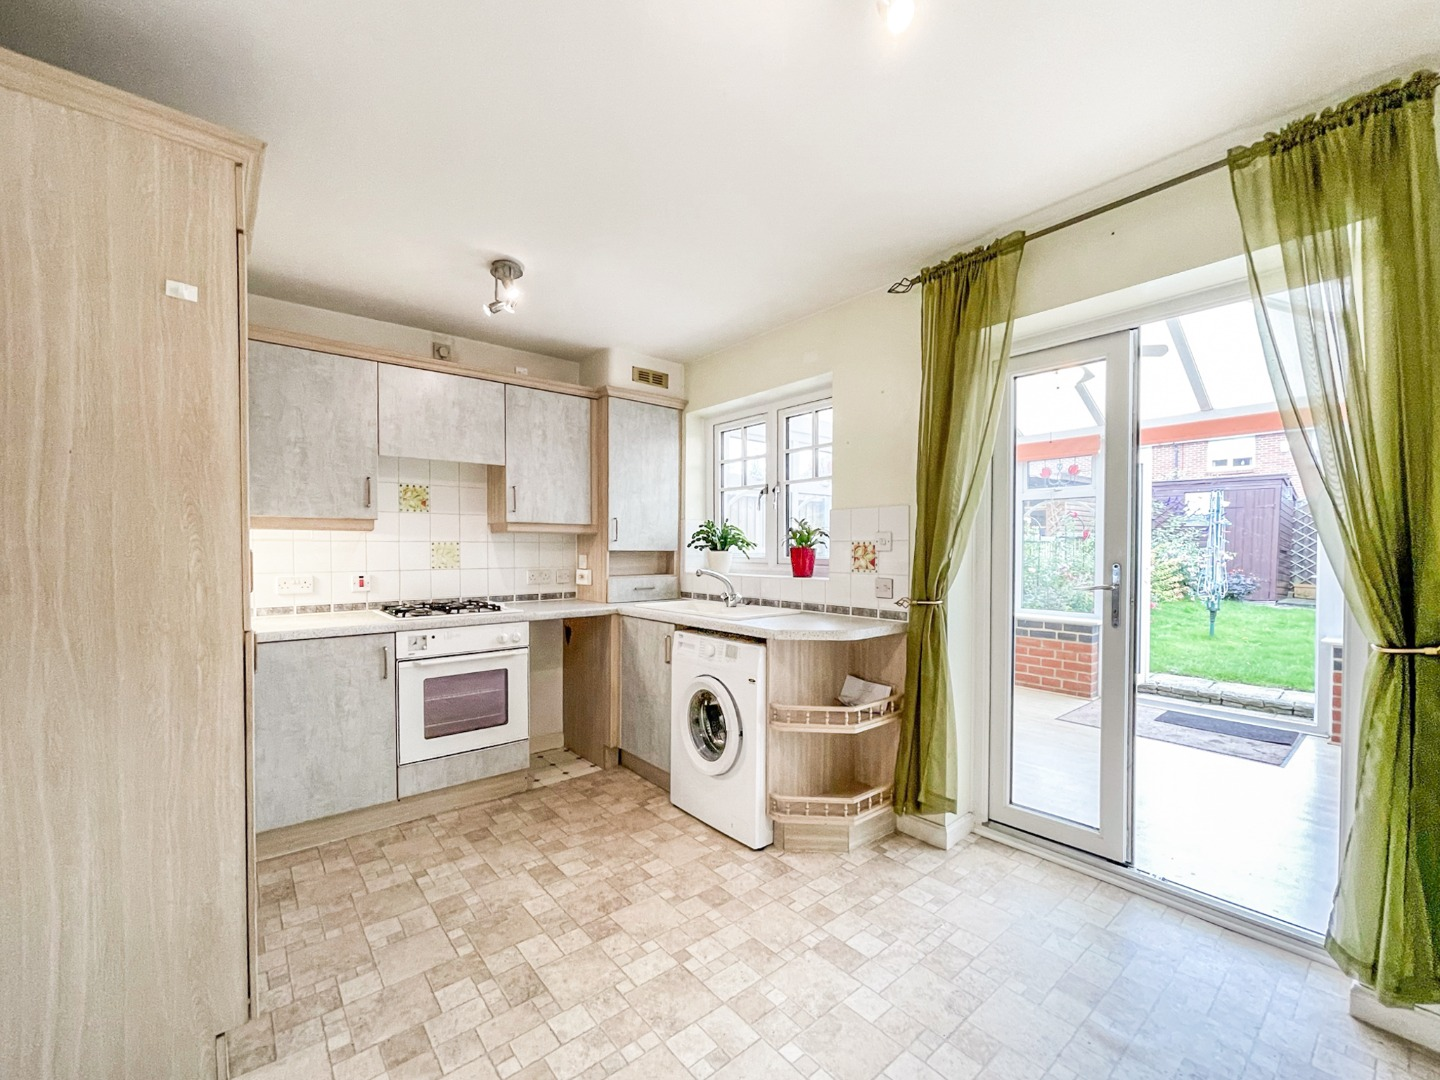 2 bed house to rent in Macgregor Drive, Wickford, SS12